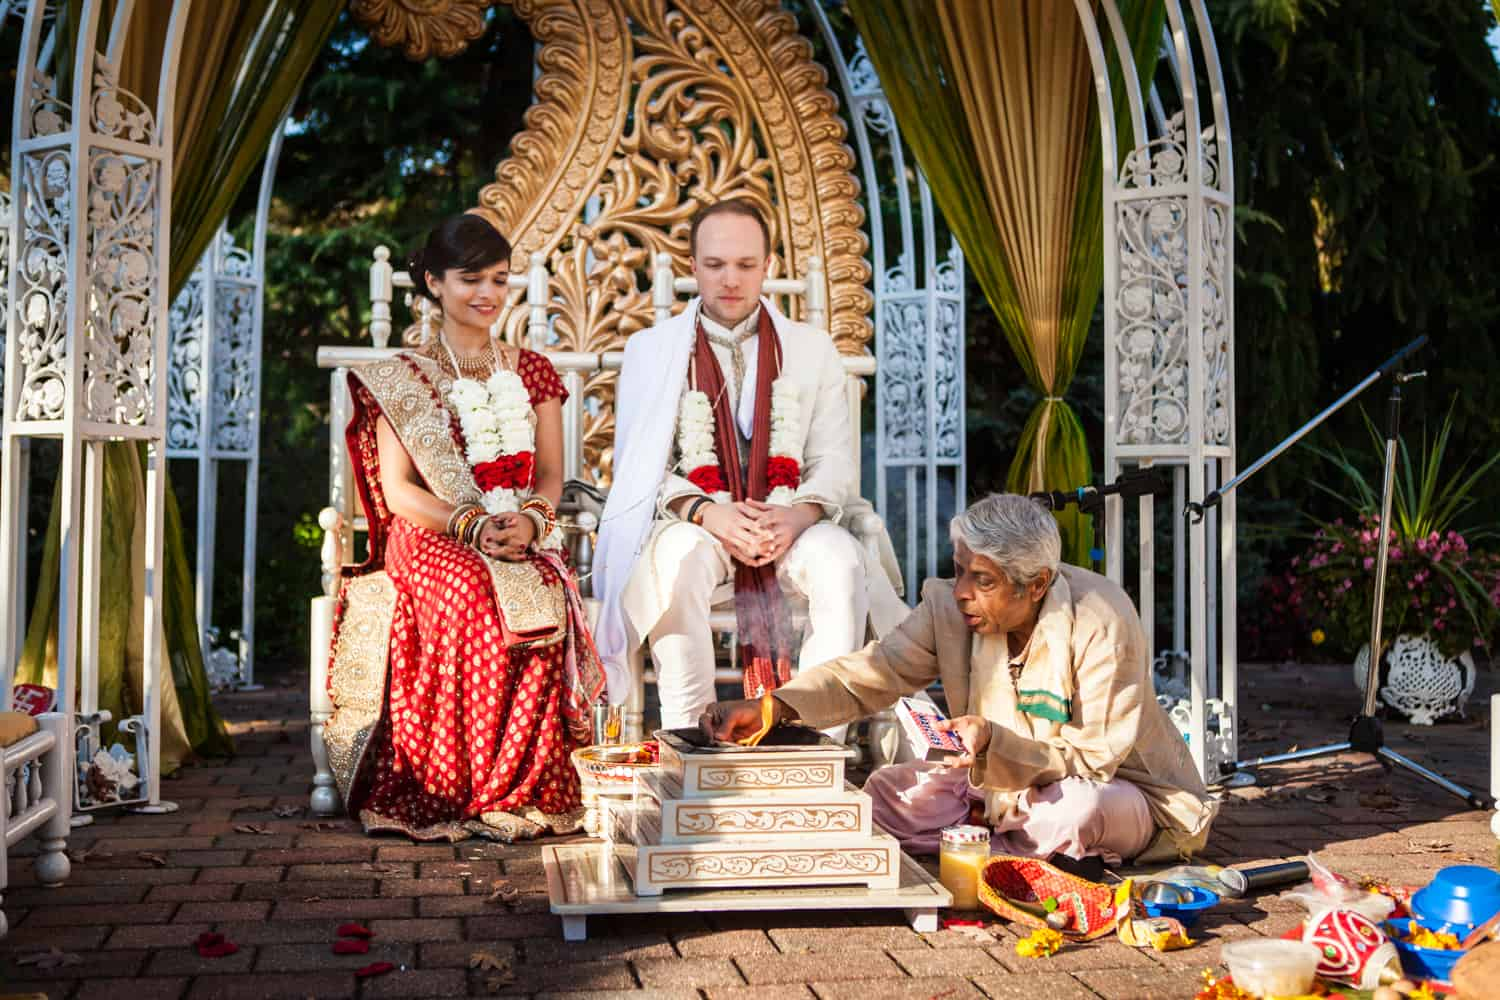 Bride and groom with priest during traditional Hindu wedding ceremony